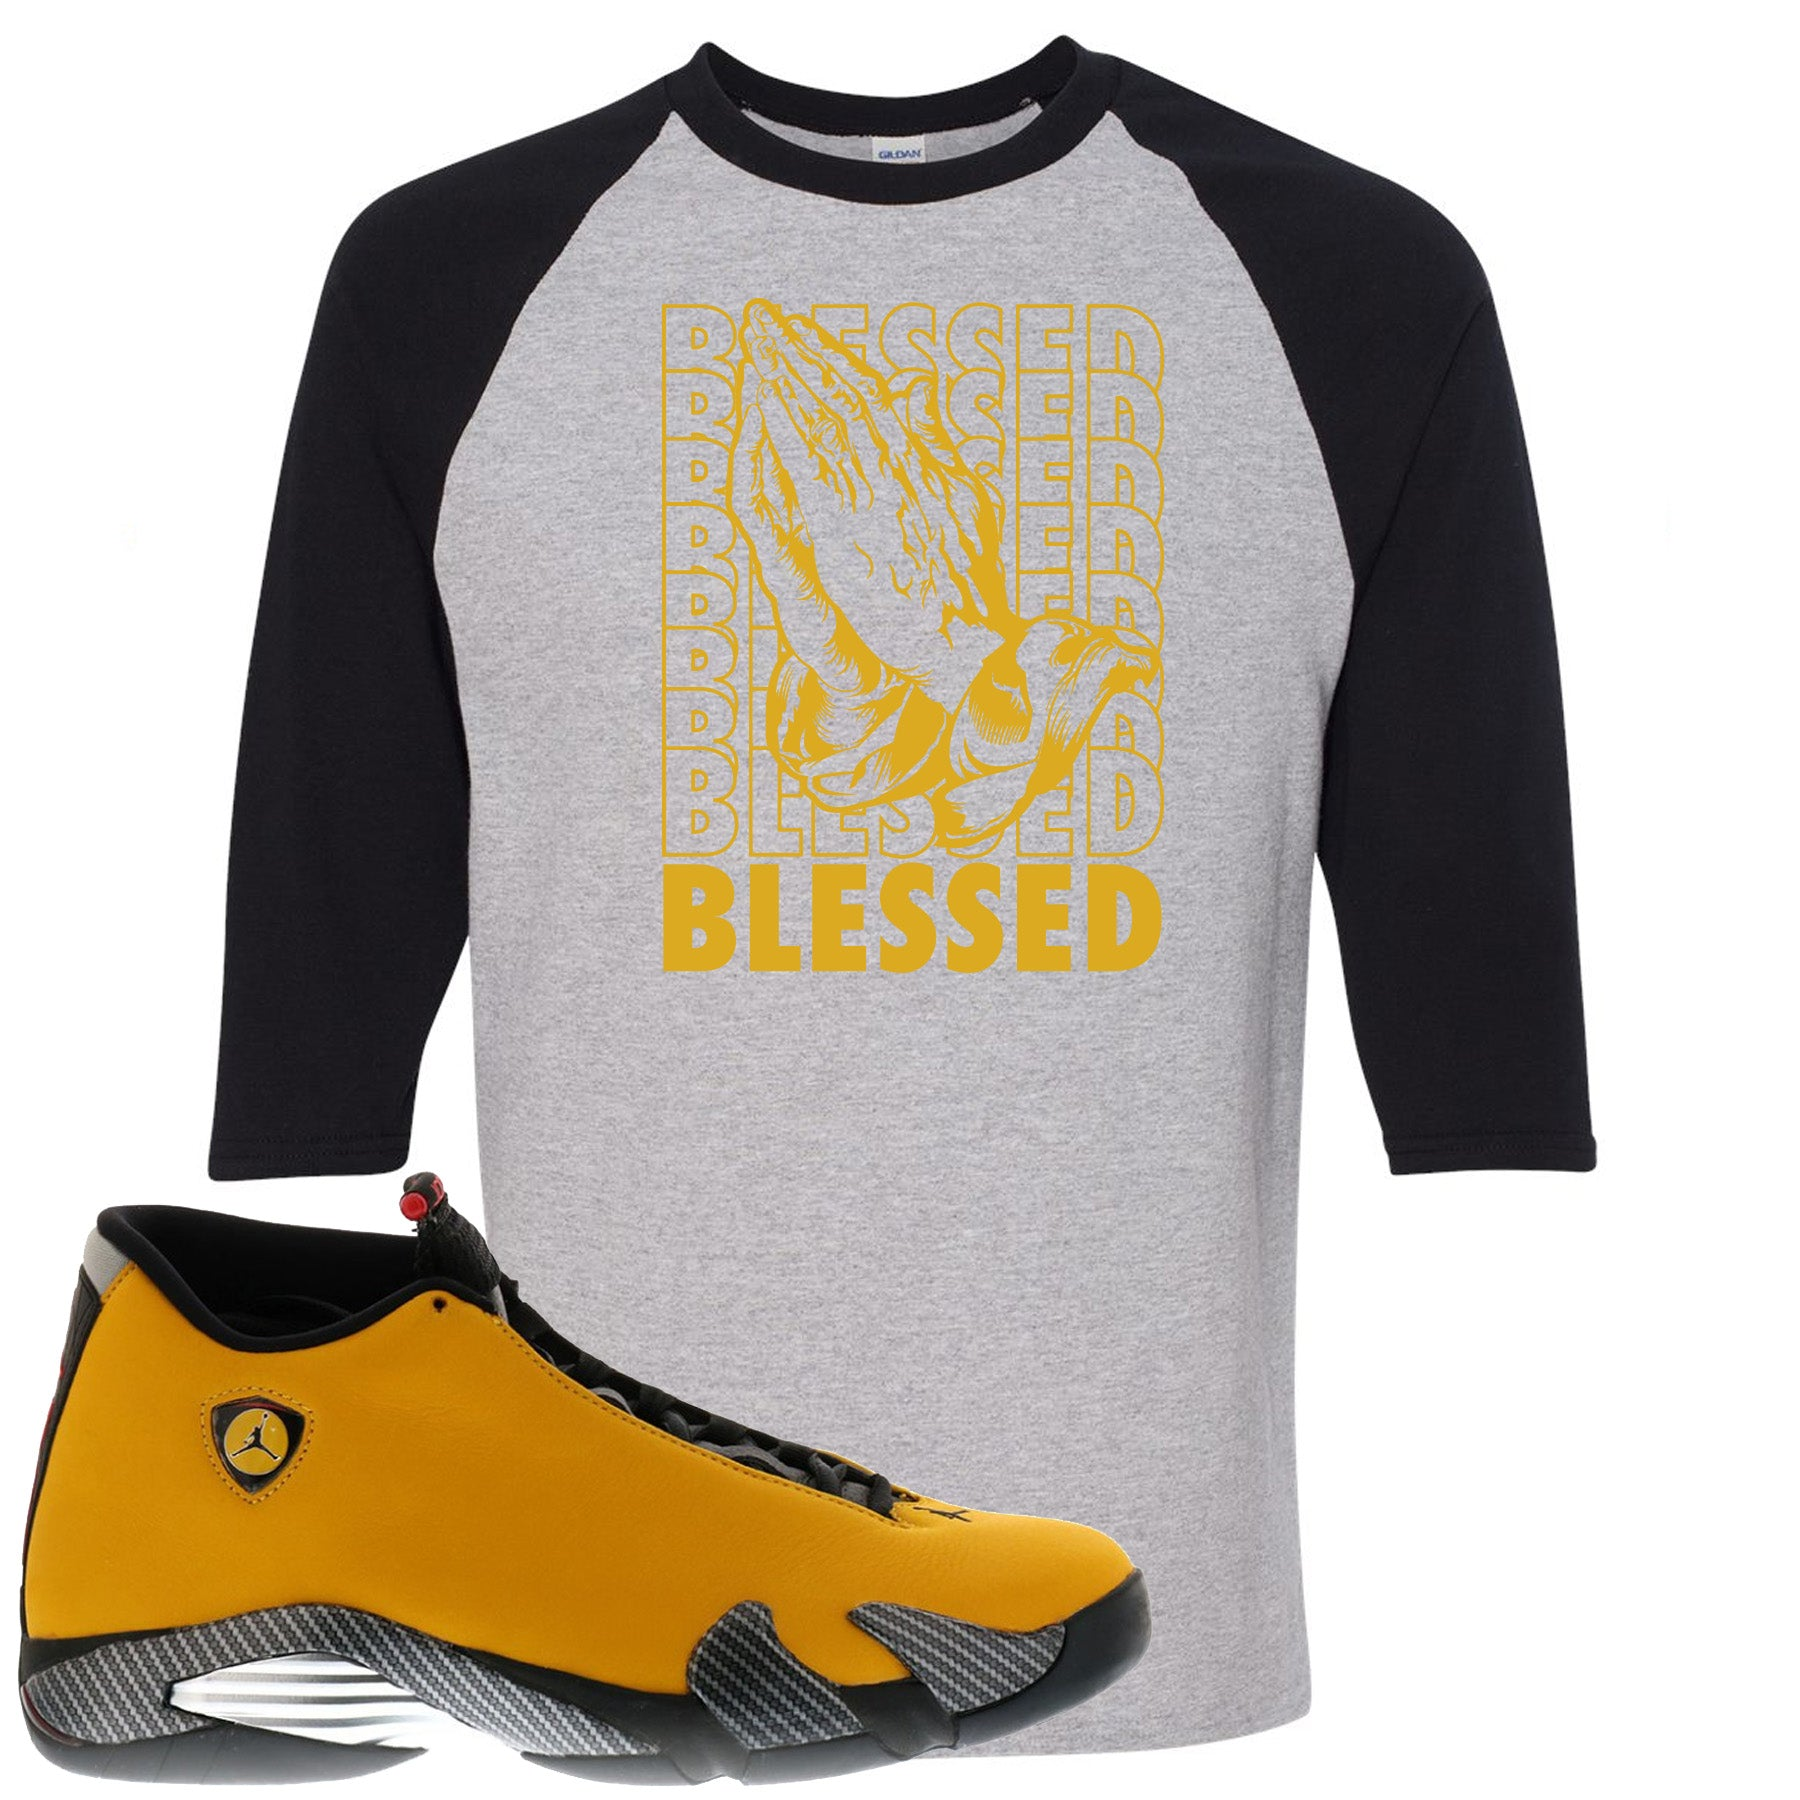 outlet store dc4ec ae63d Air Jordan 14 Reverse Ferrari Sneaker Match Blessed Sport Grey and Black  Raglan T-Shirt